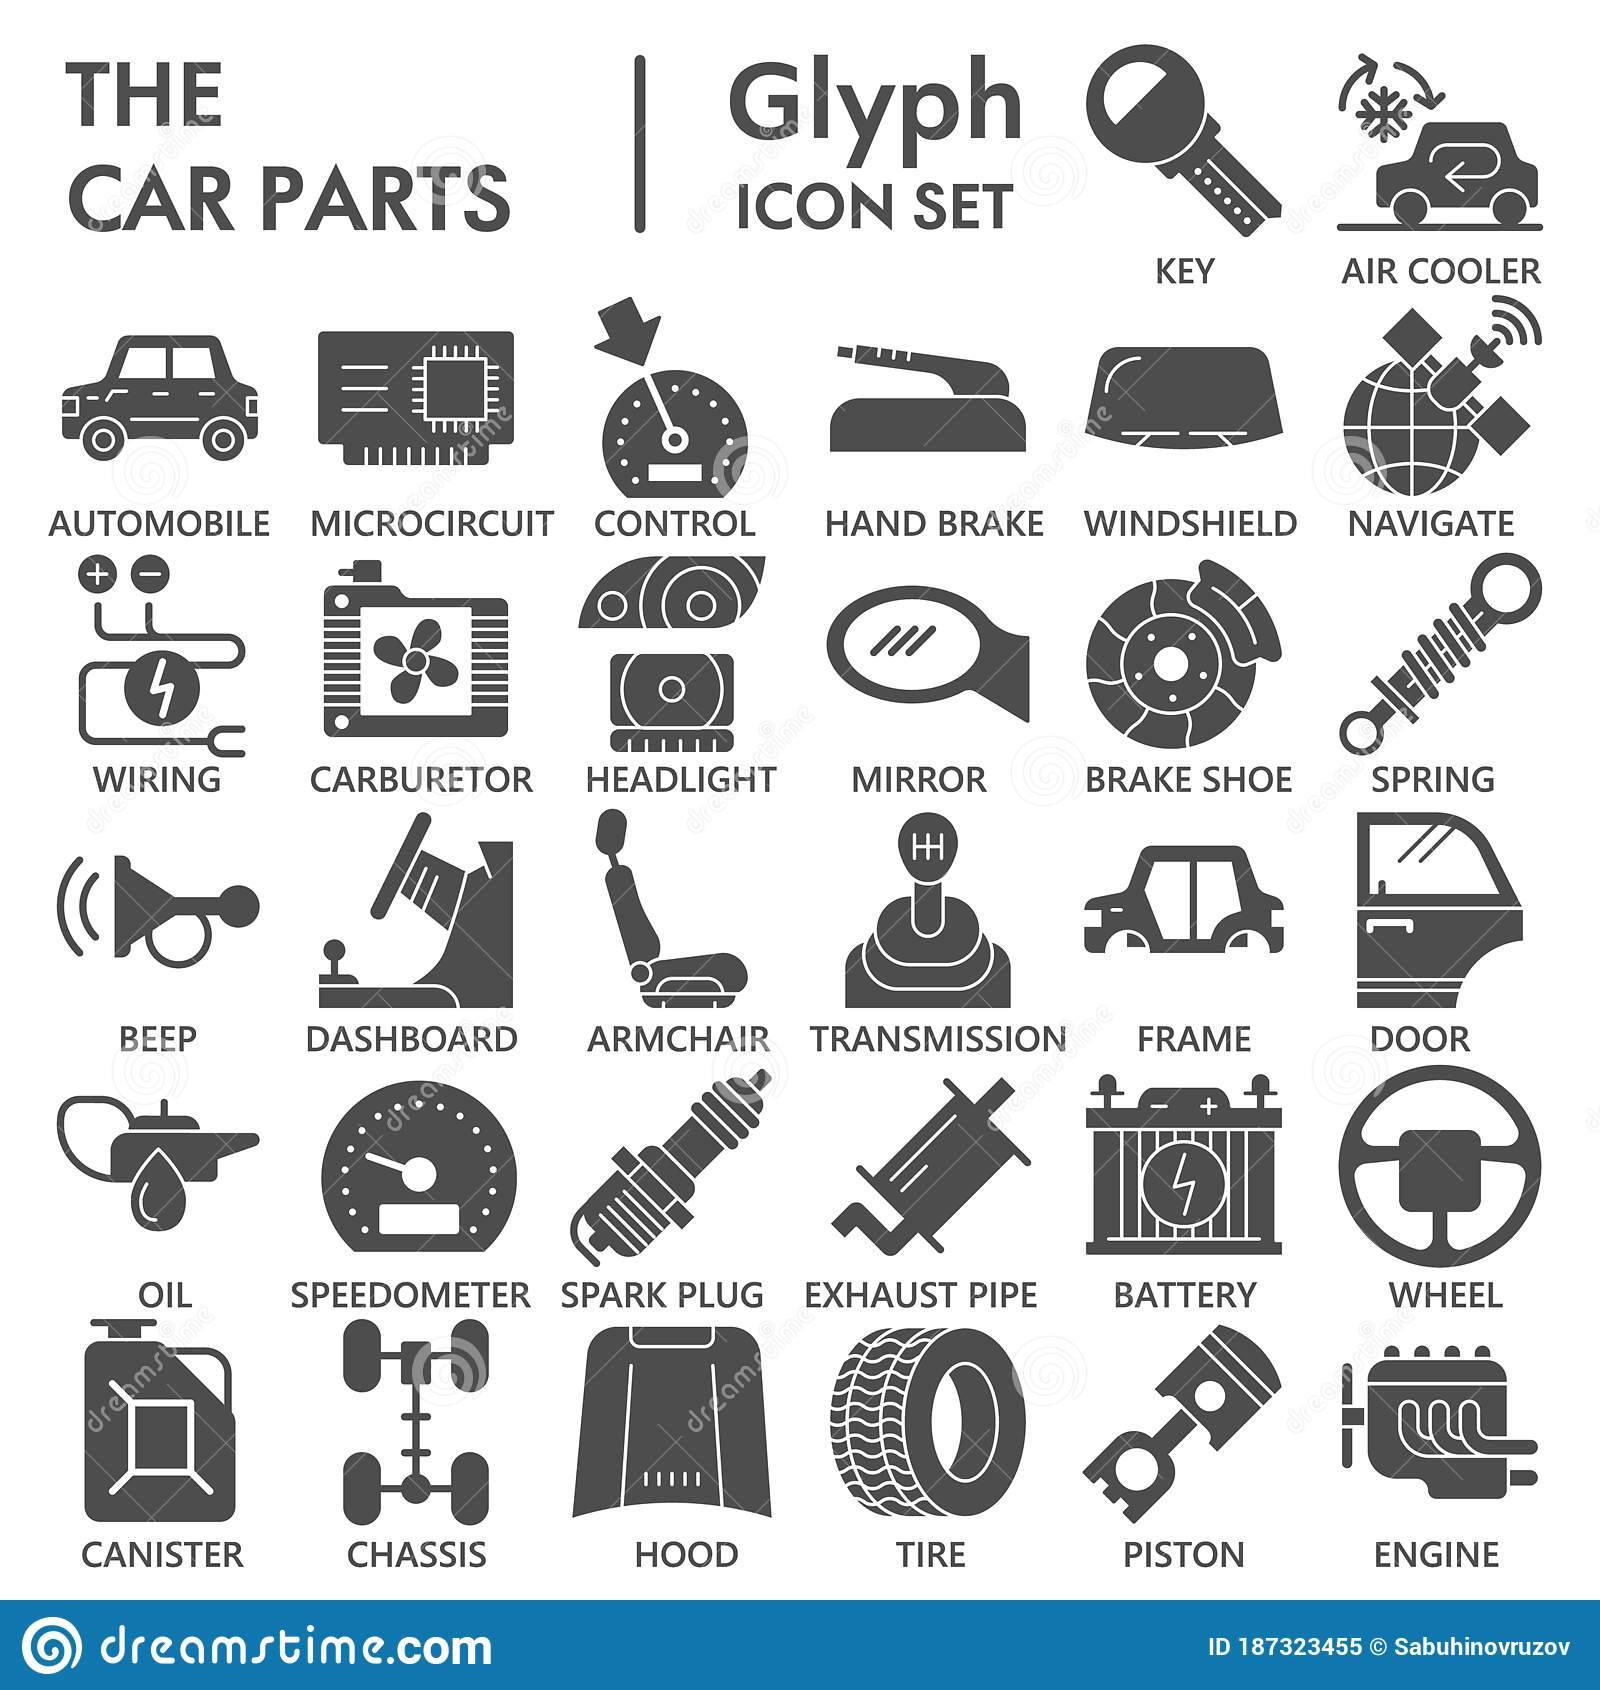 Car Parts Solid Icon Set Vehicle Repairing Symbols Collection Or Sketches Car Inside And Outside Glyph Style Signs For Stock Vector Illustration Of Repair Automotive 187323455